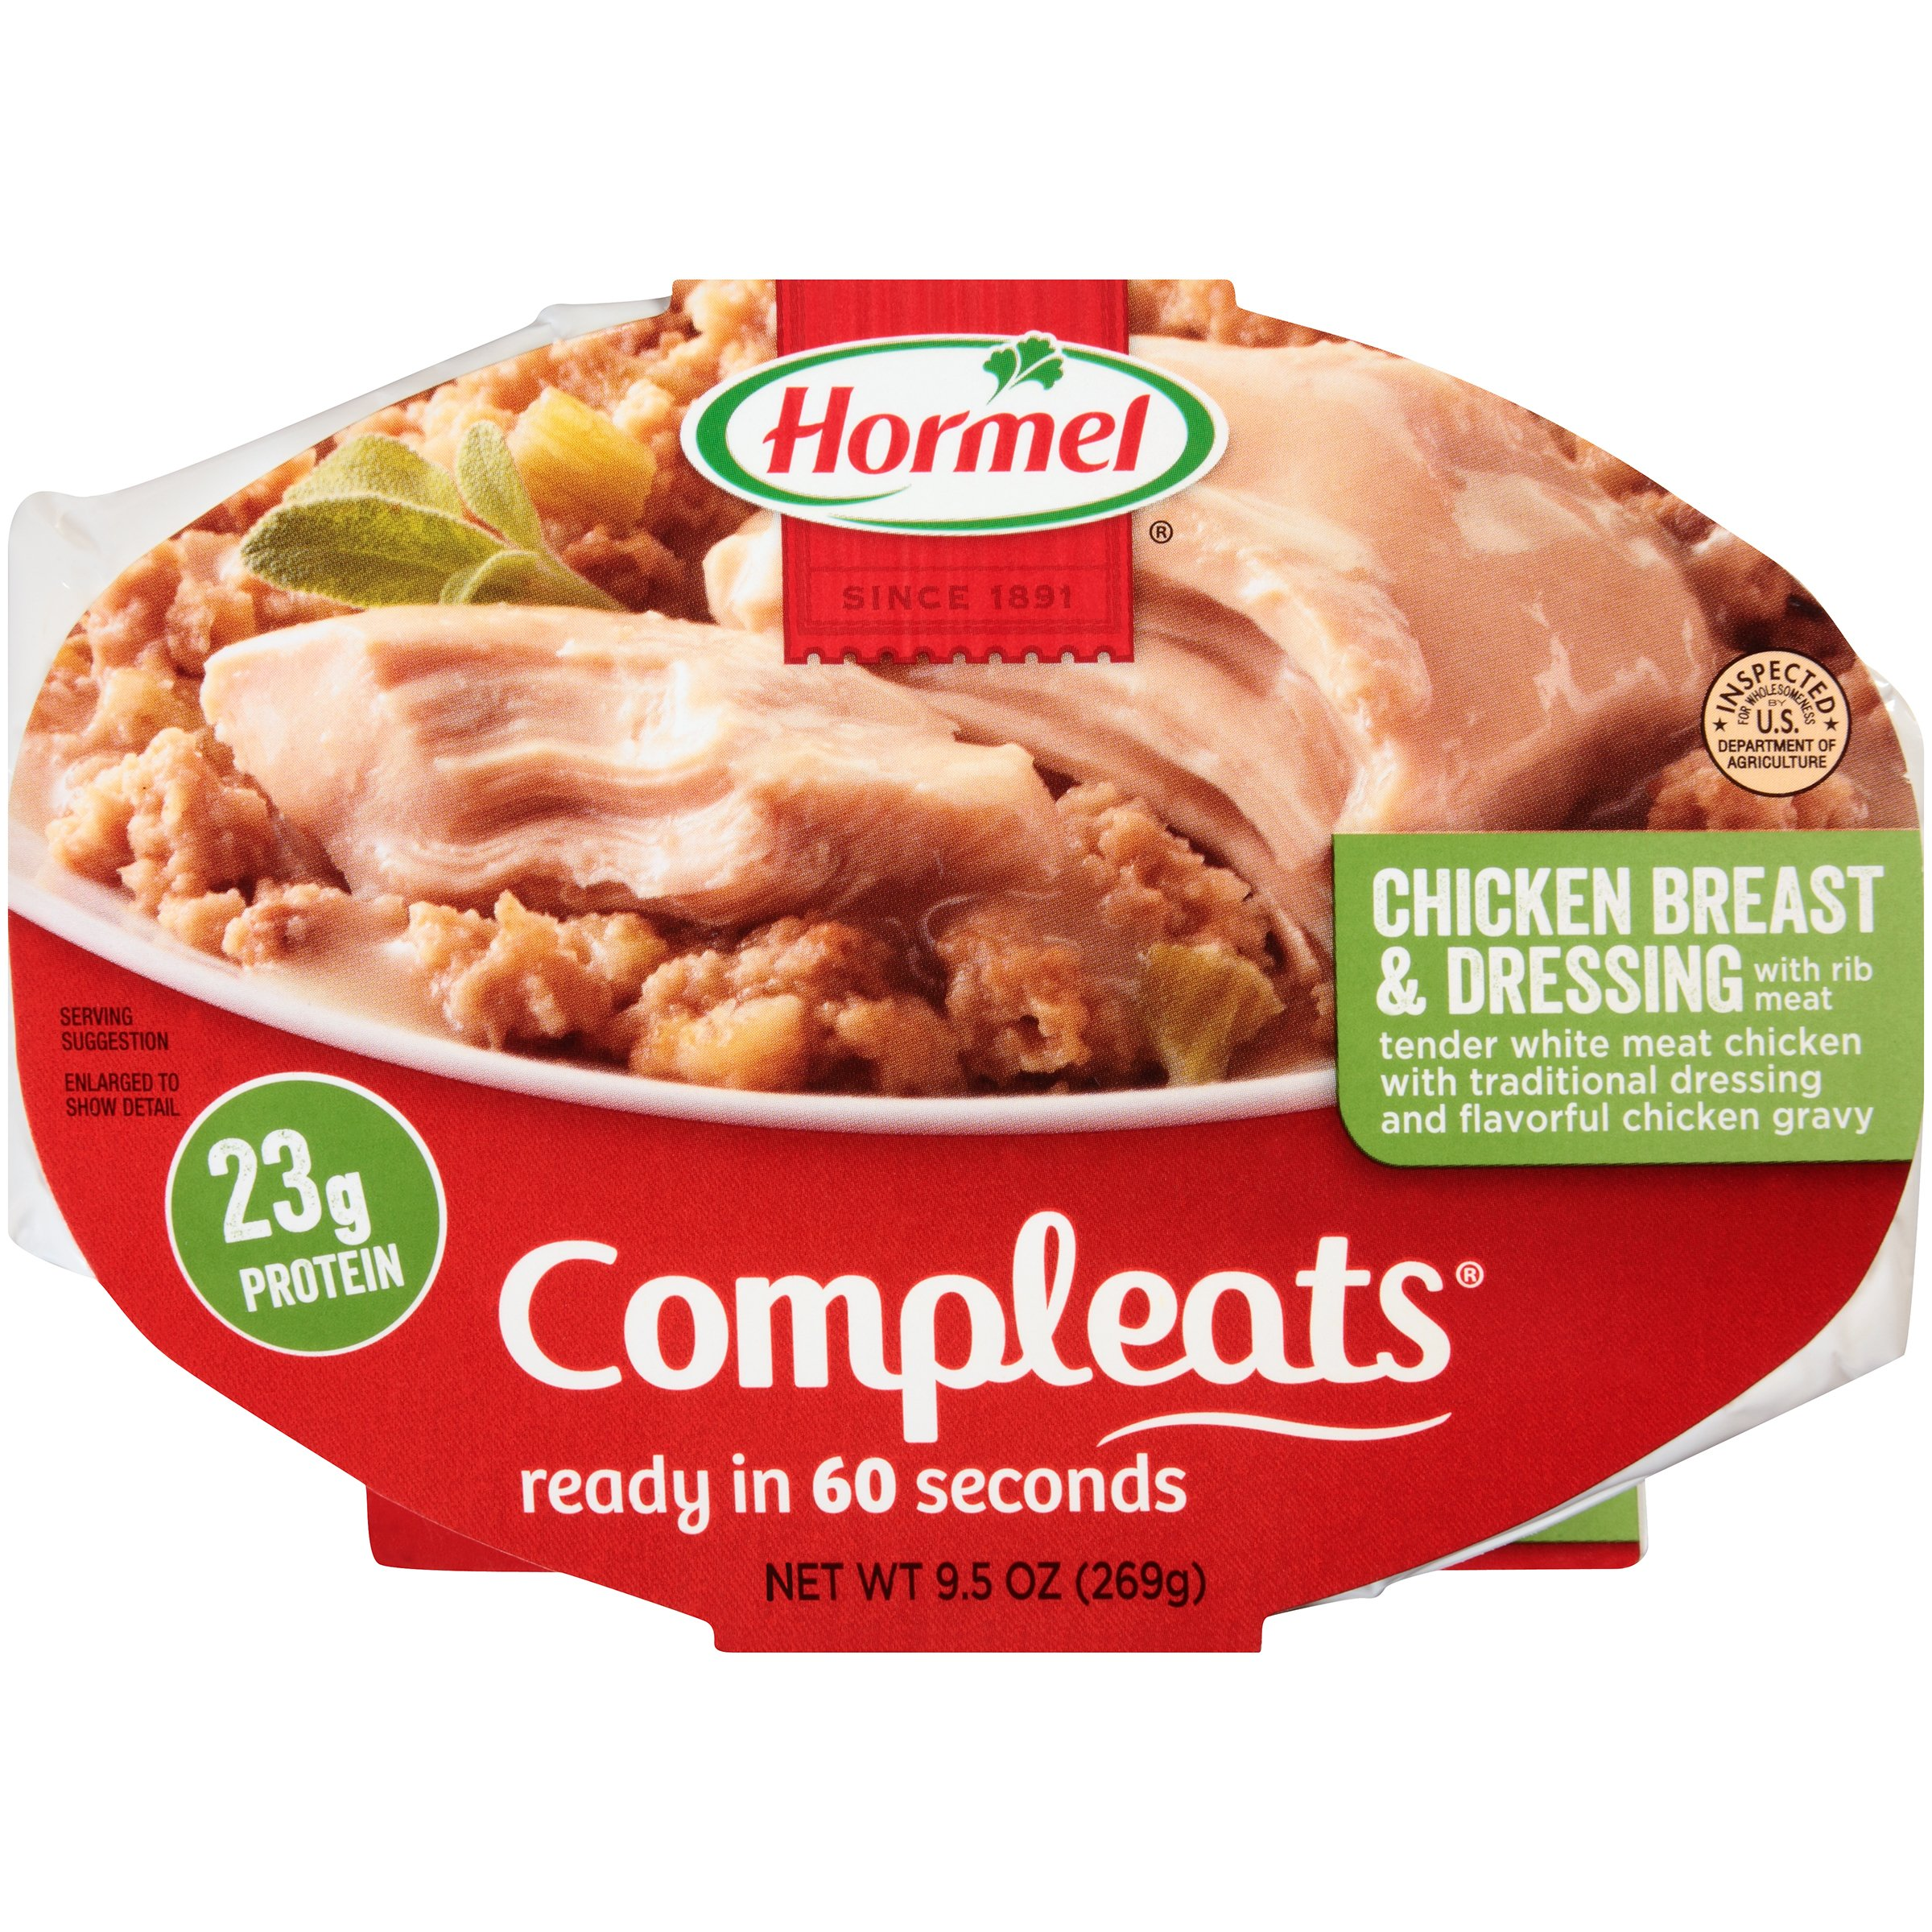 Hormel Compleats Chicken Breast Dressing Shop Pantry Meals At H E B